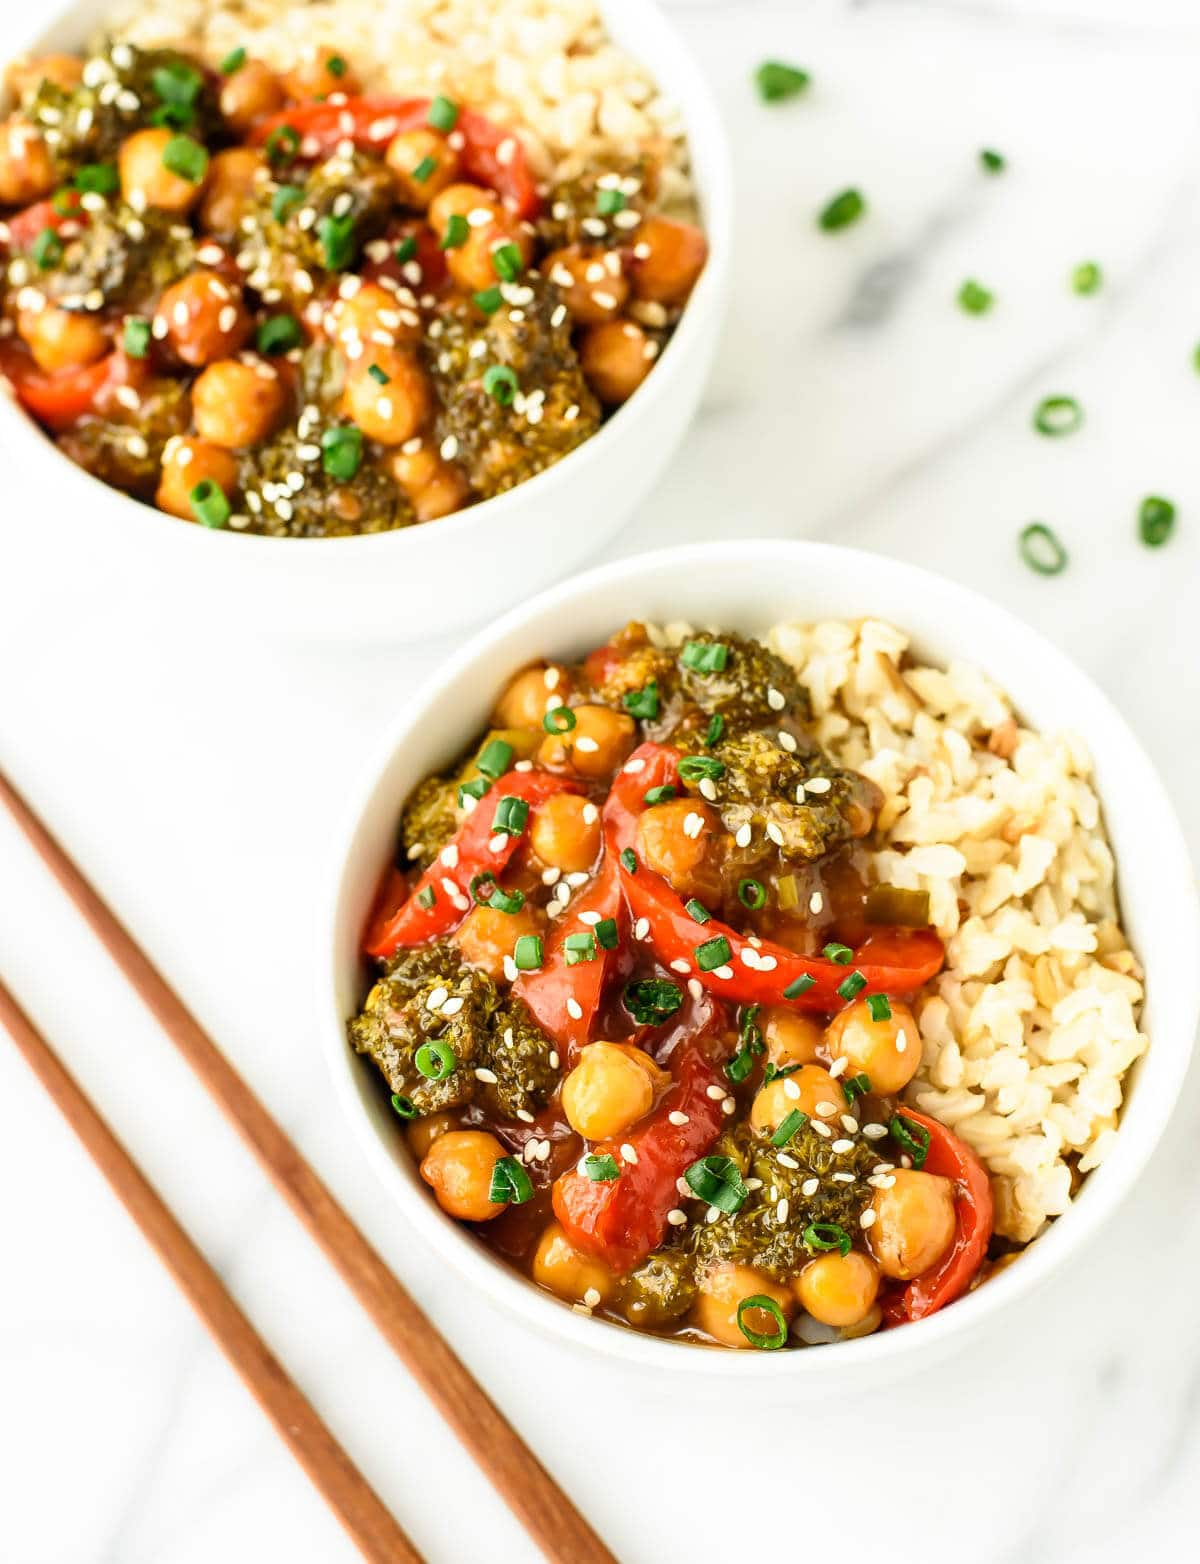 The BEST General Tso's Recipe - General Tso's Chickpeas. Ready in 20 minutes and half the calories of the original!